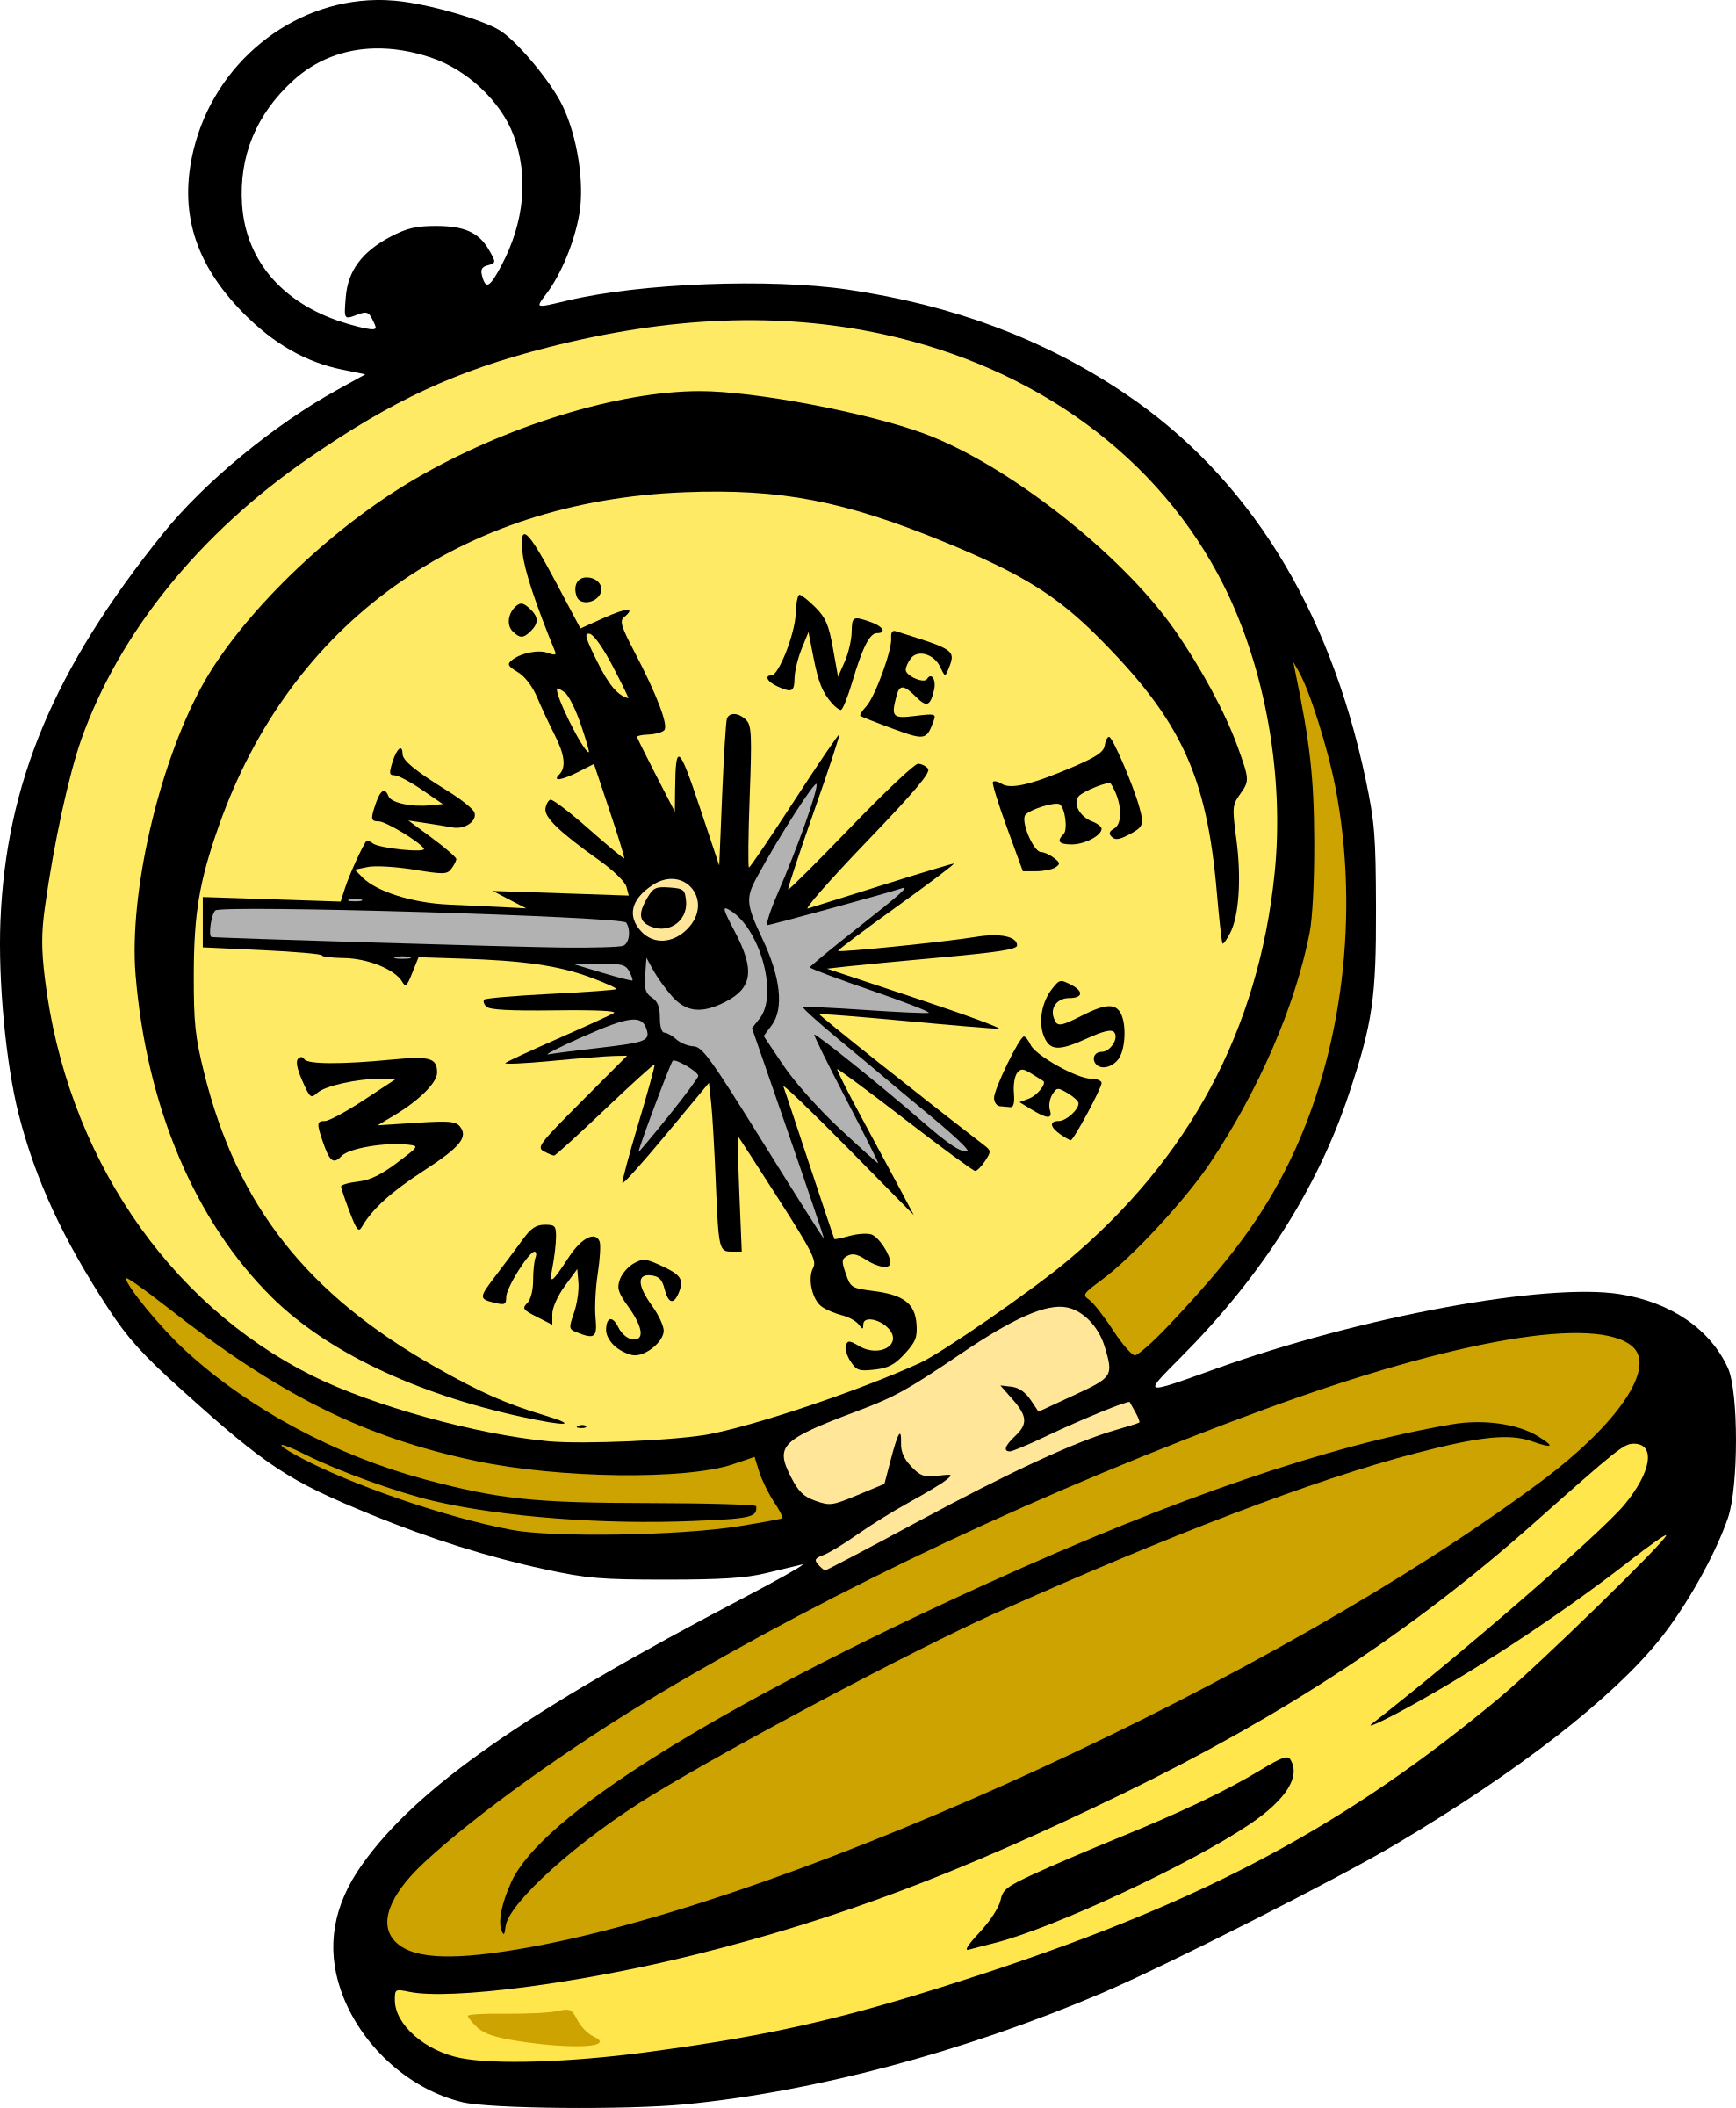 Pirate Compass Clipart.